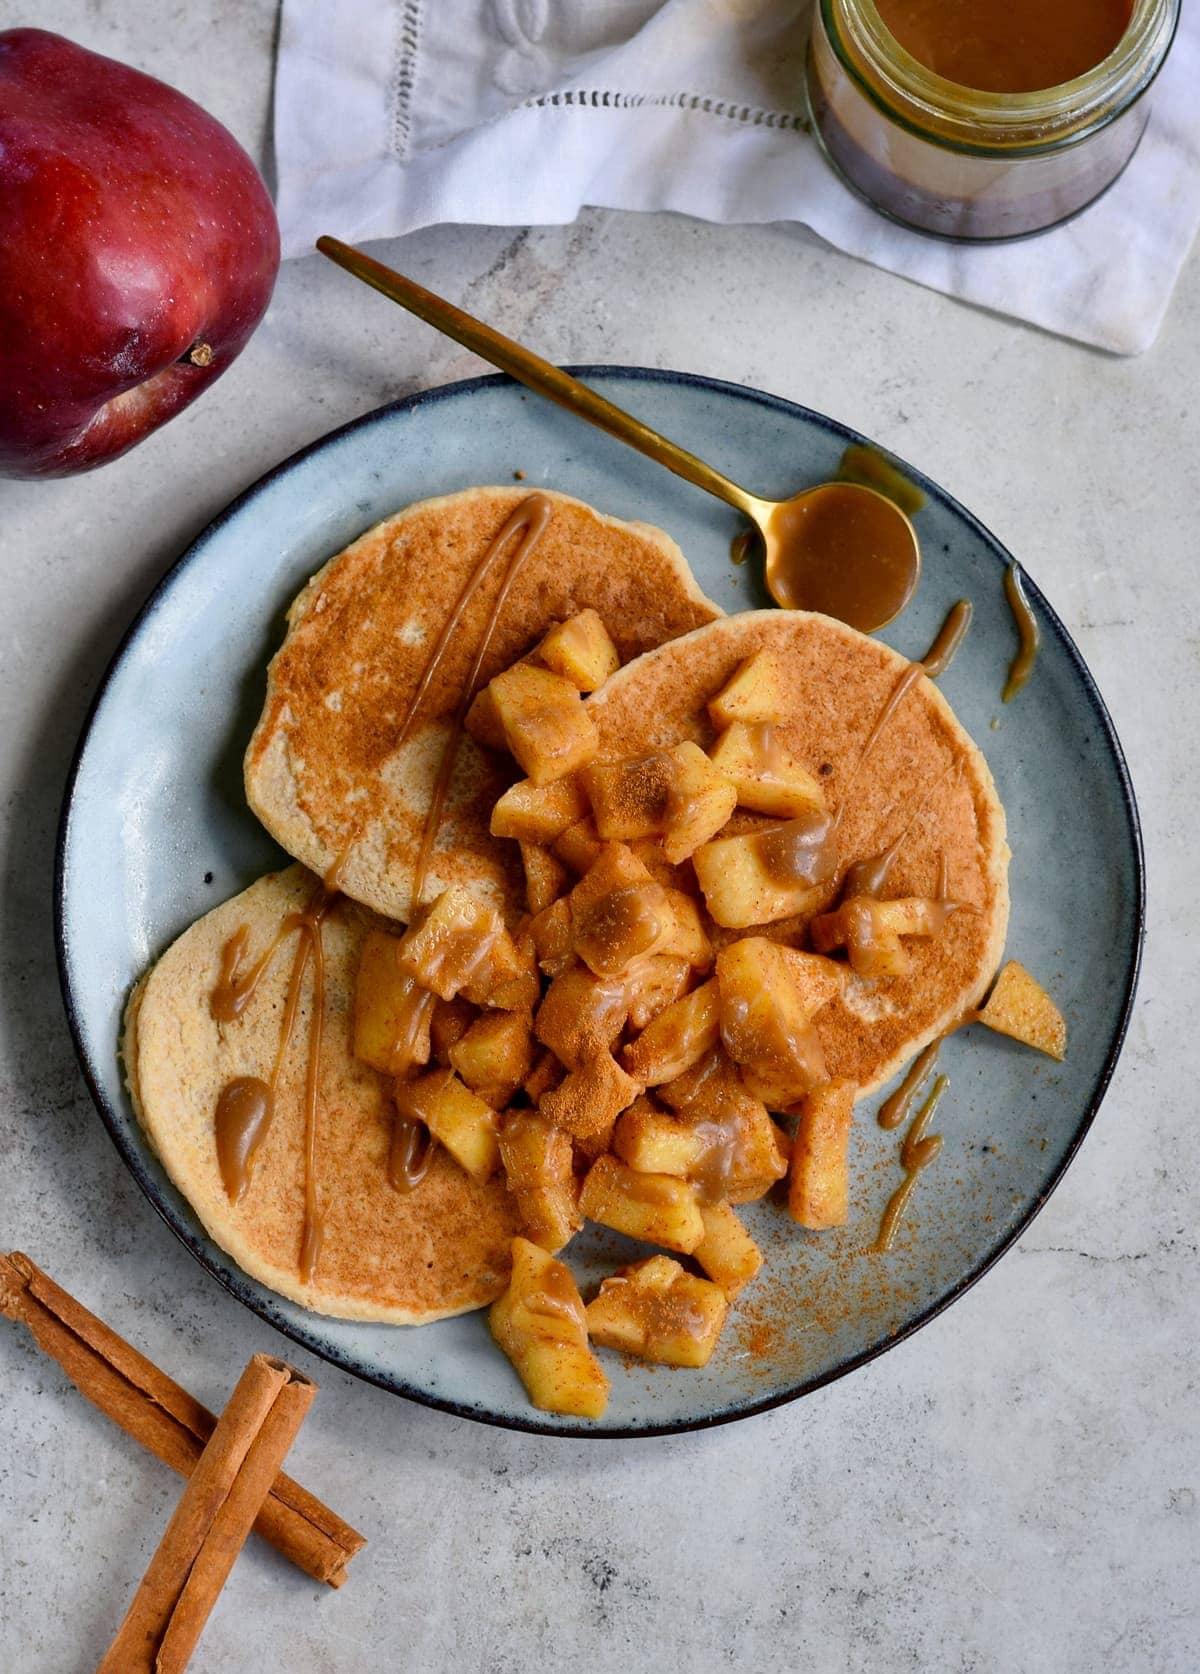 pancakes on plate with apples and caramel sauce